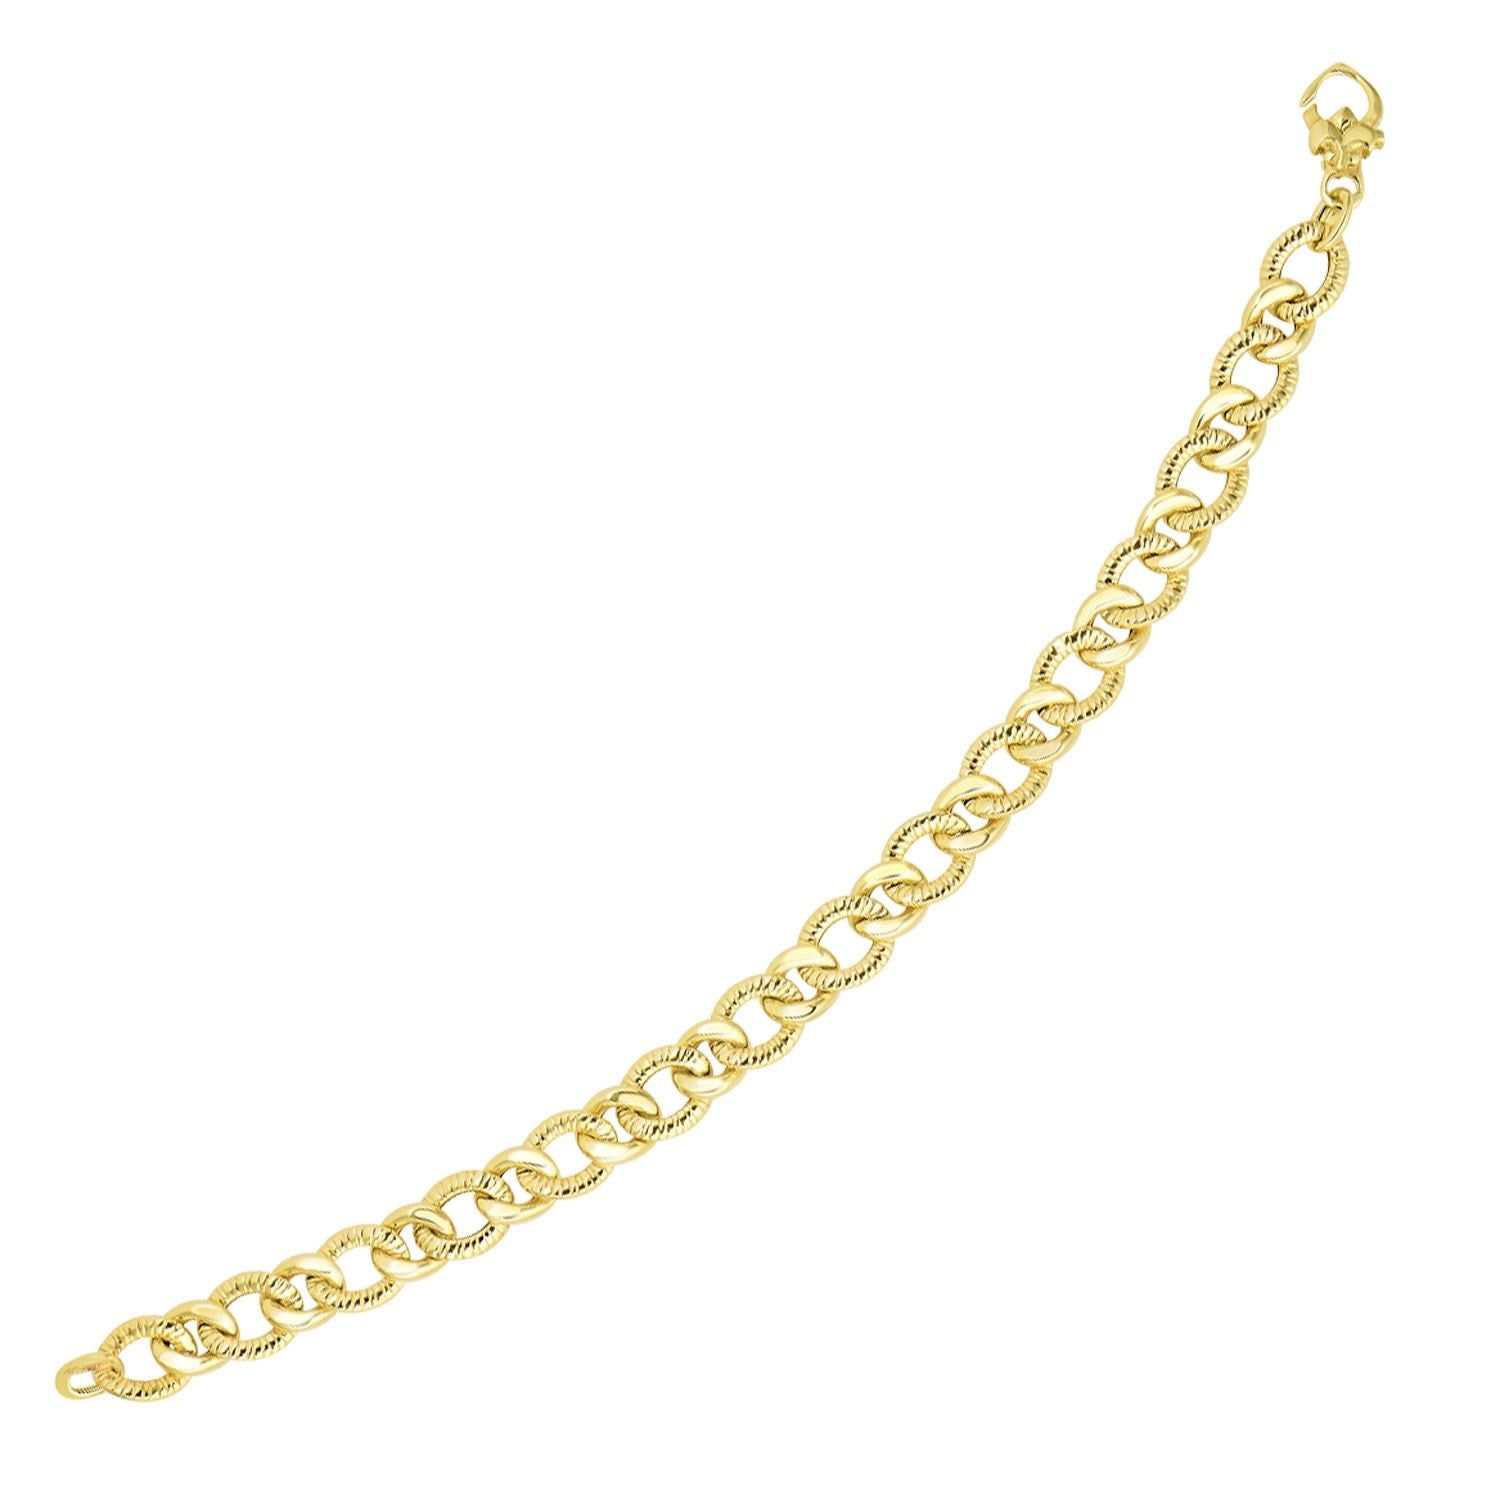 14k Yellow Gold Curb Chain Design with Diamond Cuts Bracelet